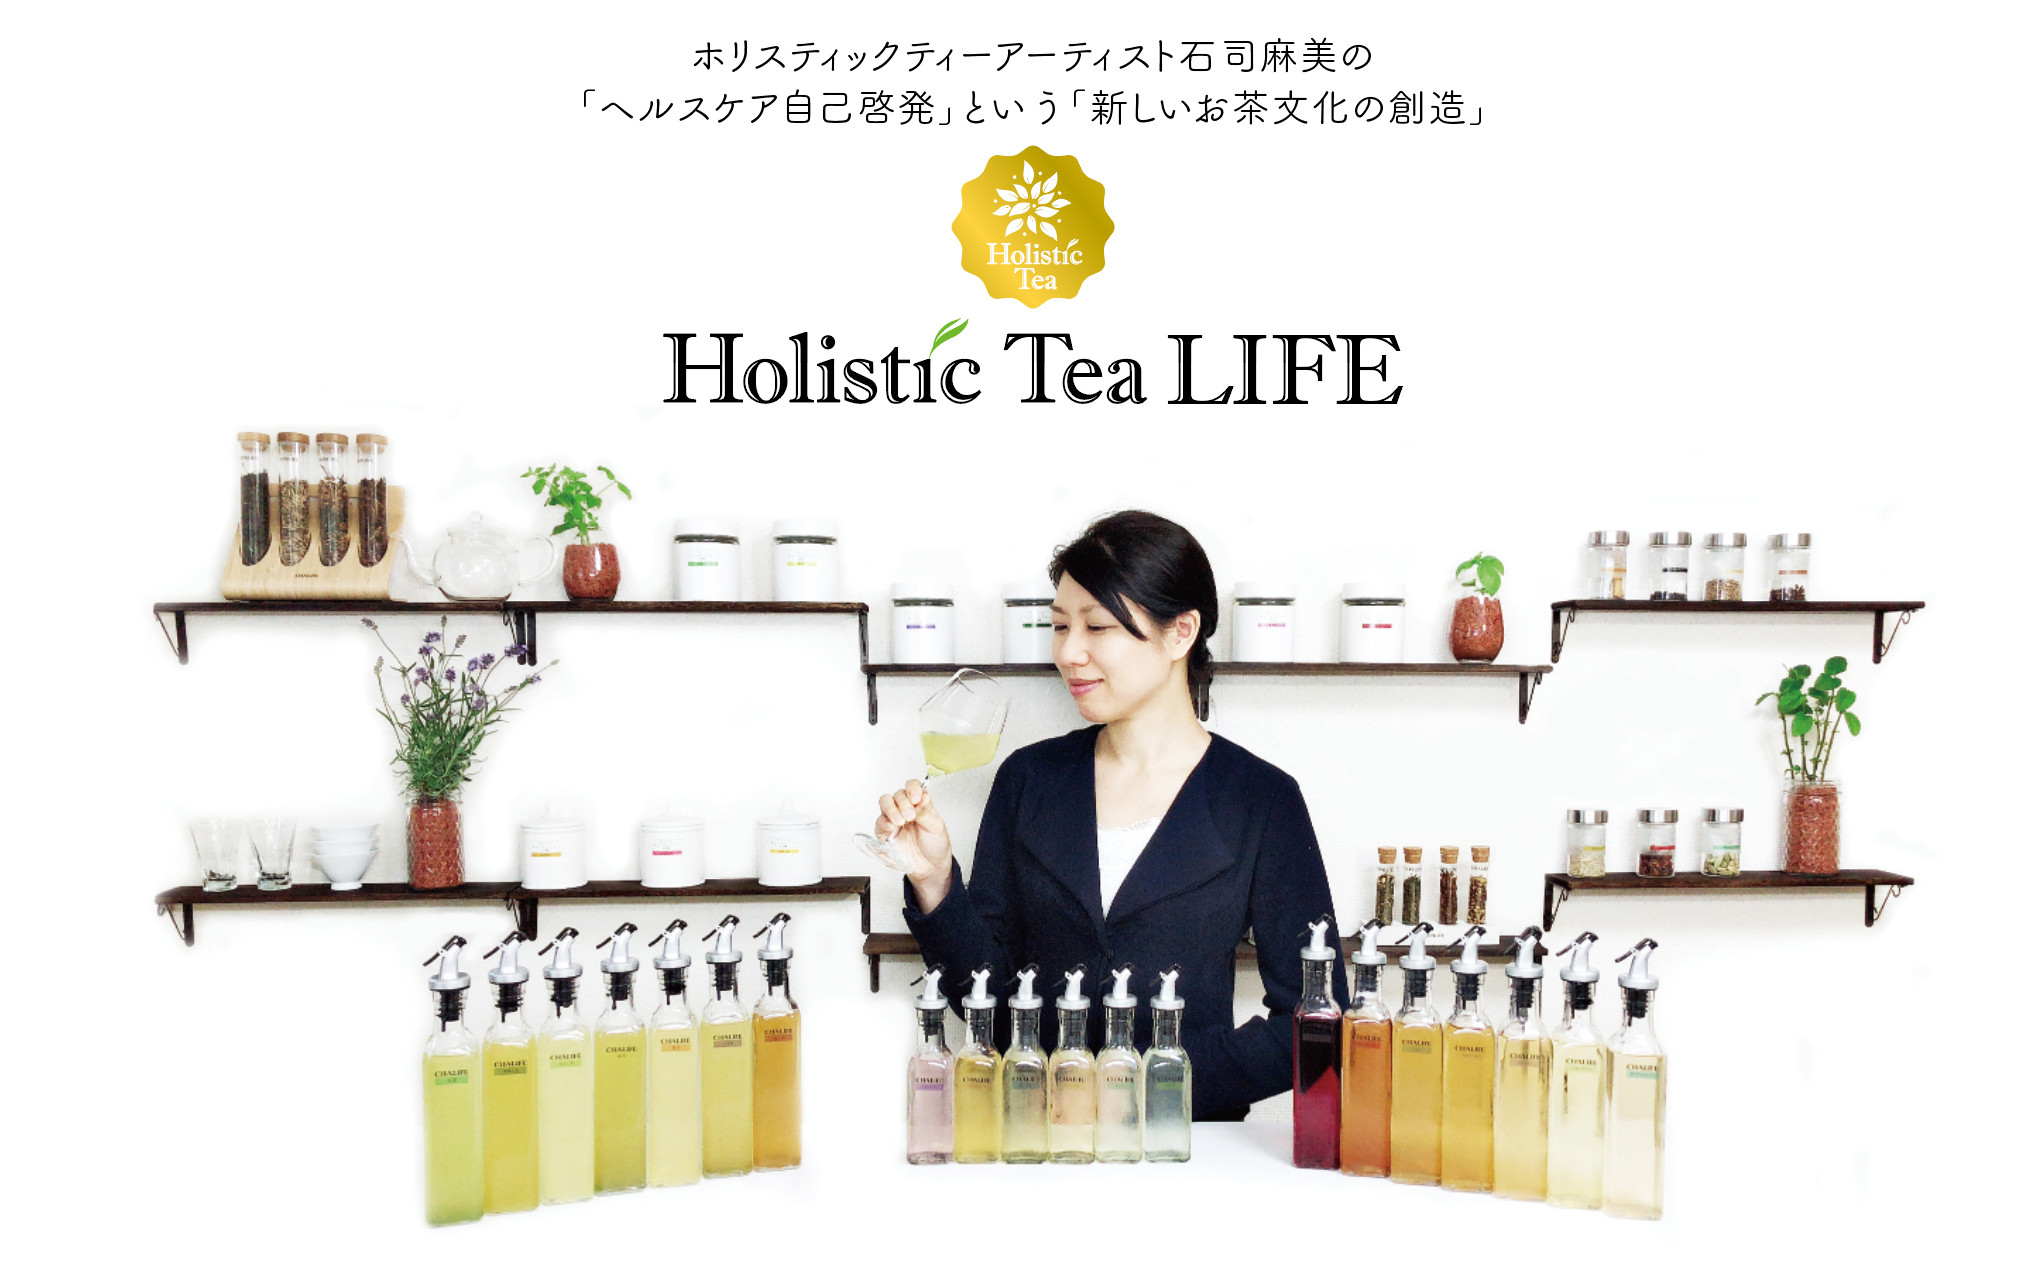 Holistic tea life